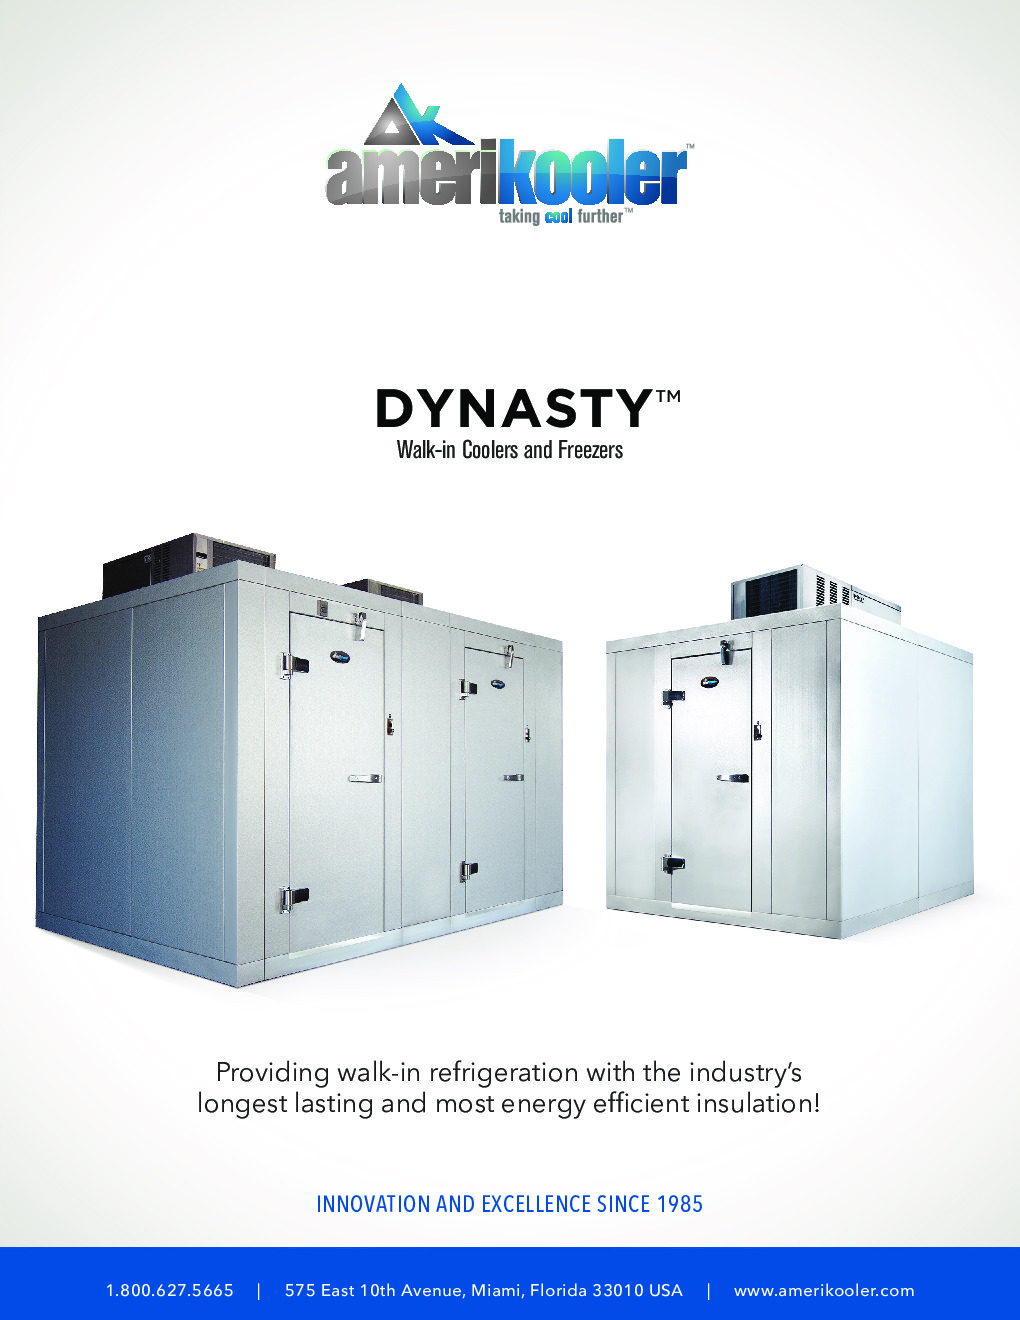 AmeriKooler DW092077N-6/14-RM 9' X 20' Walk-In Cooler, 14' L Cooler without Floor and 6' L Freezer, Remote